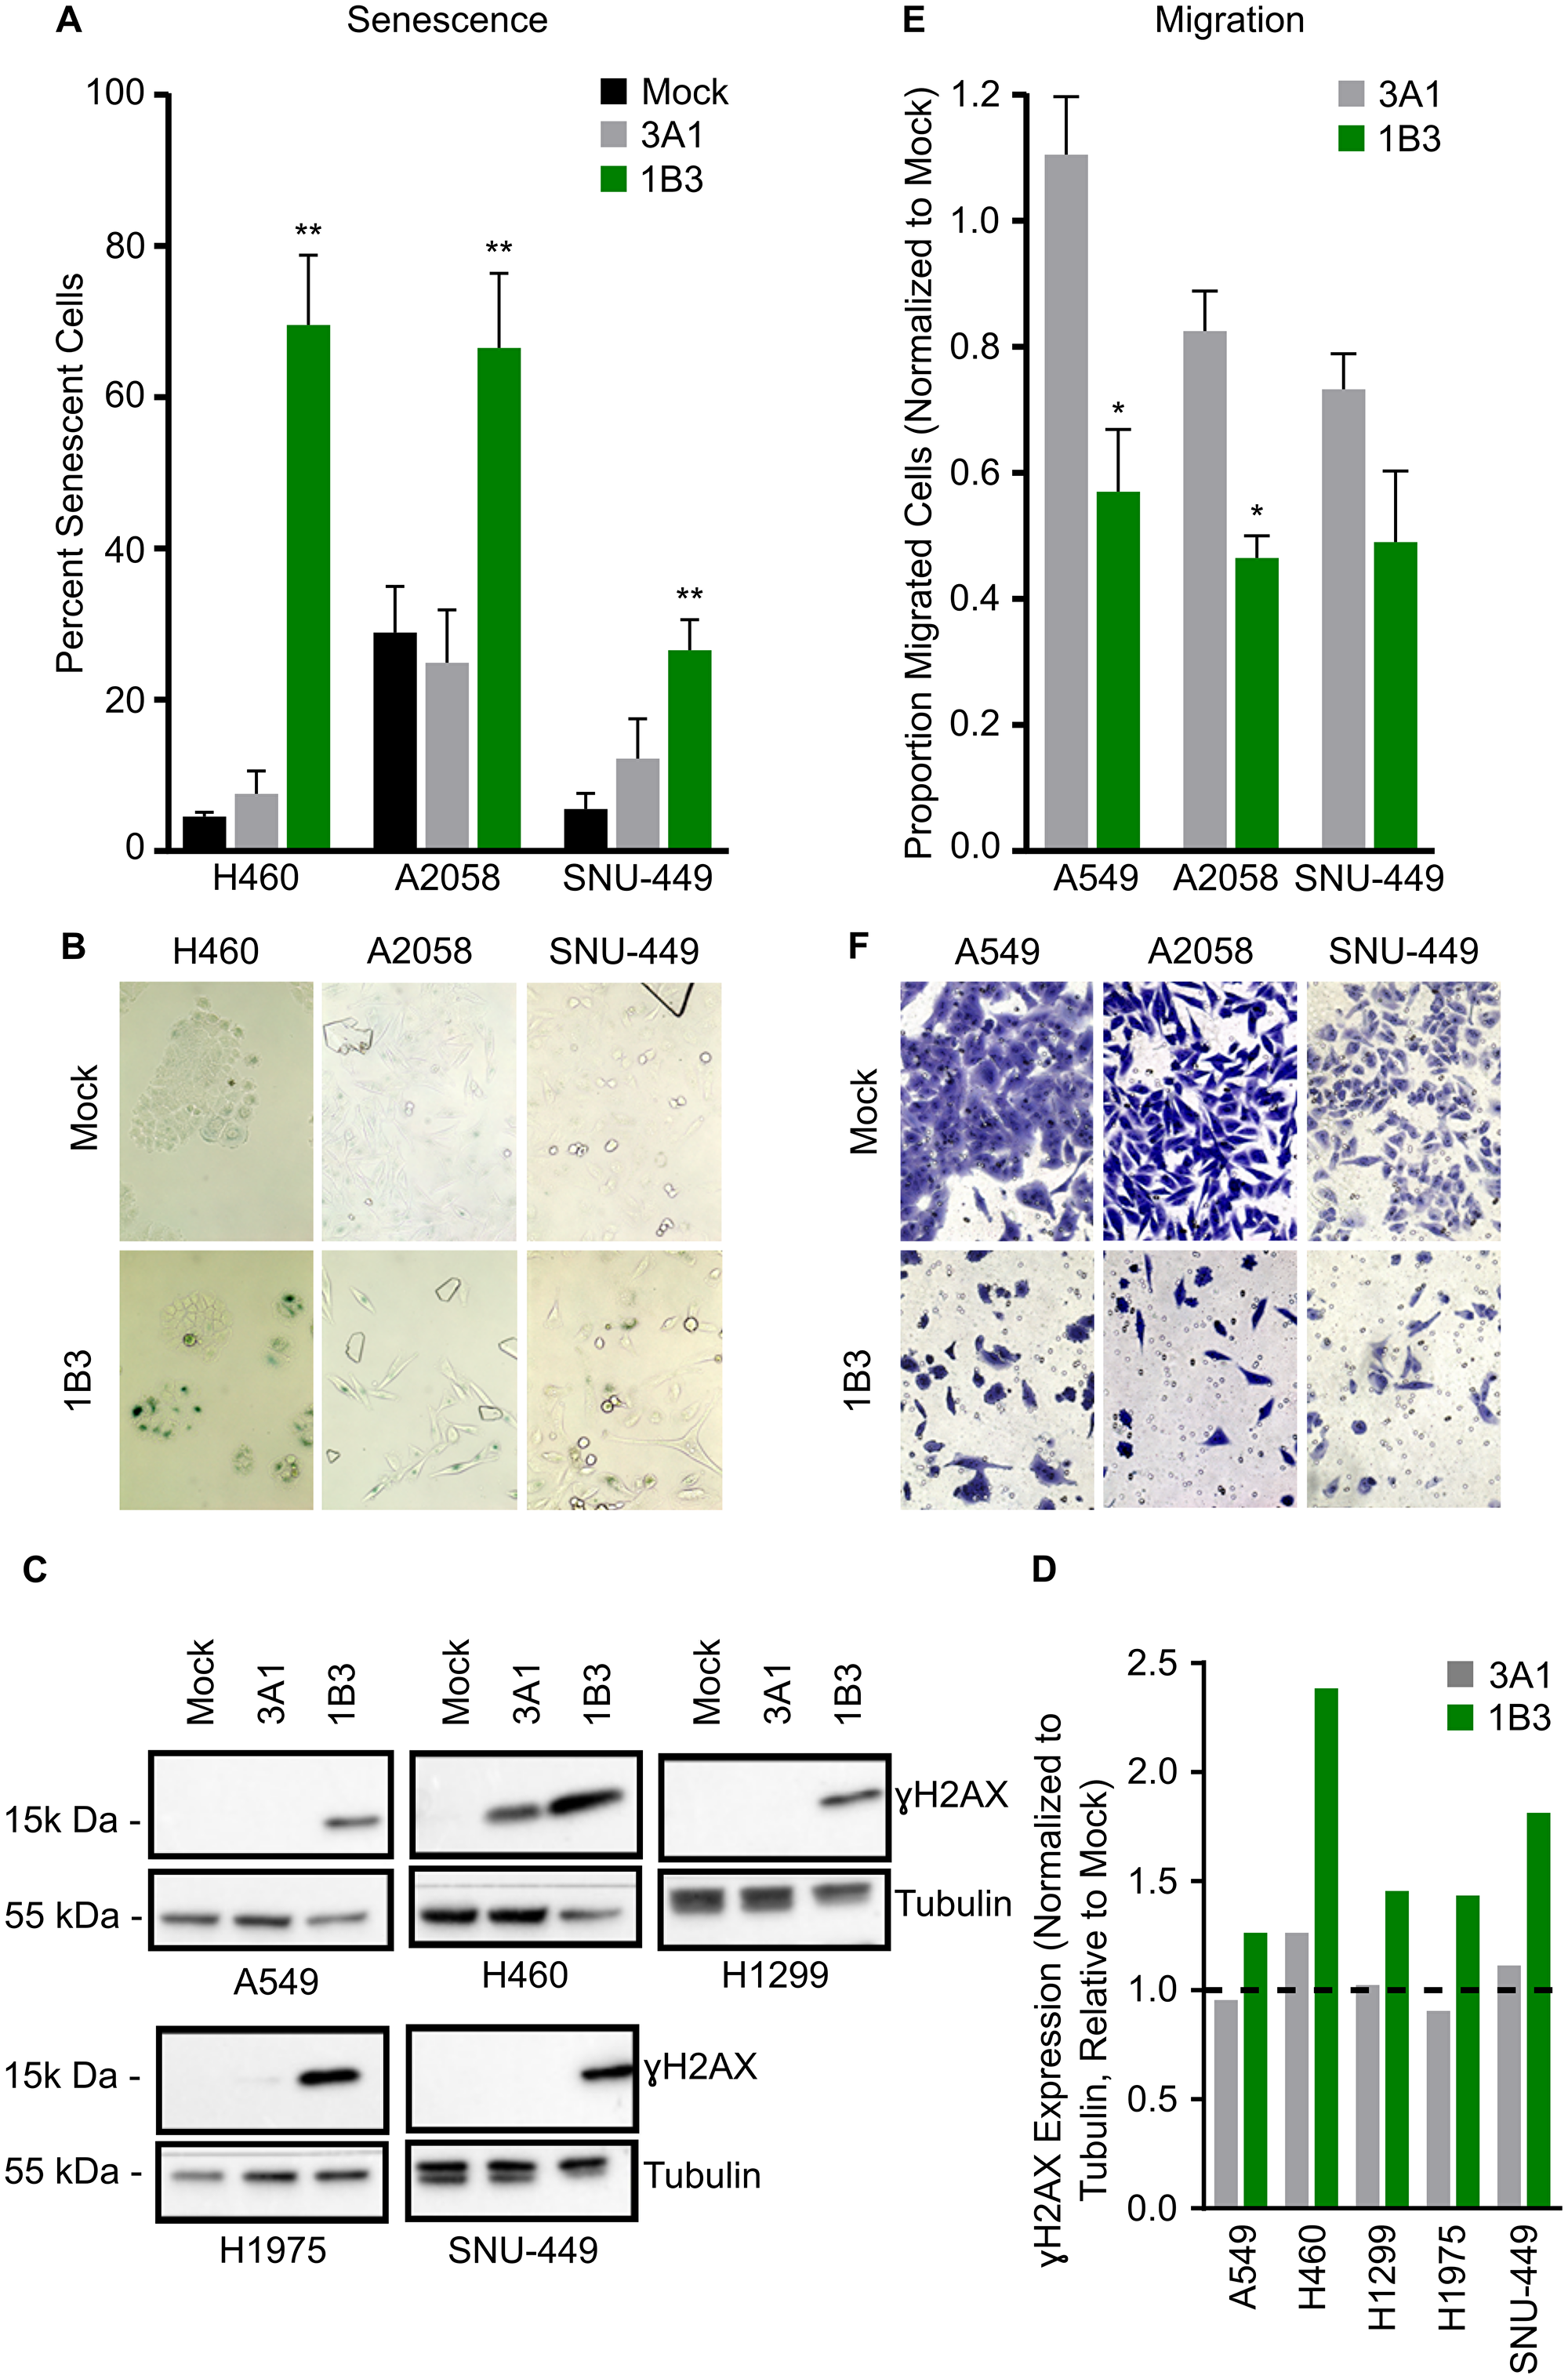 Effect of 1B3 on tumor cell senescence, migration, and DNA damage.